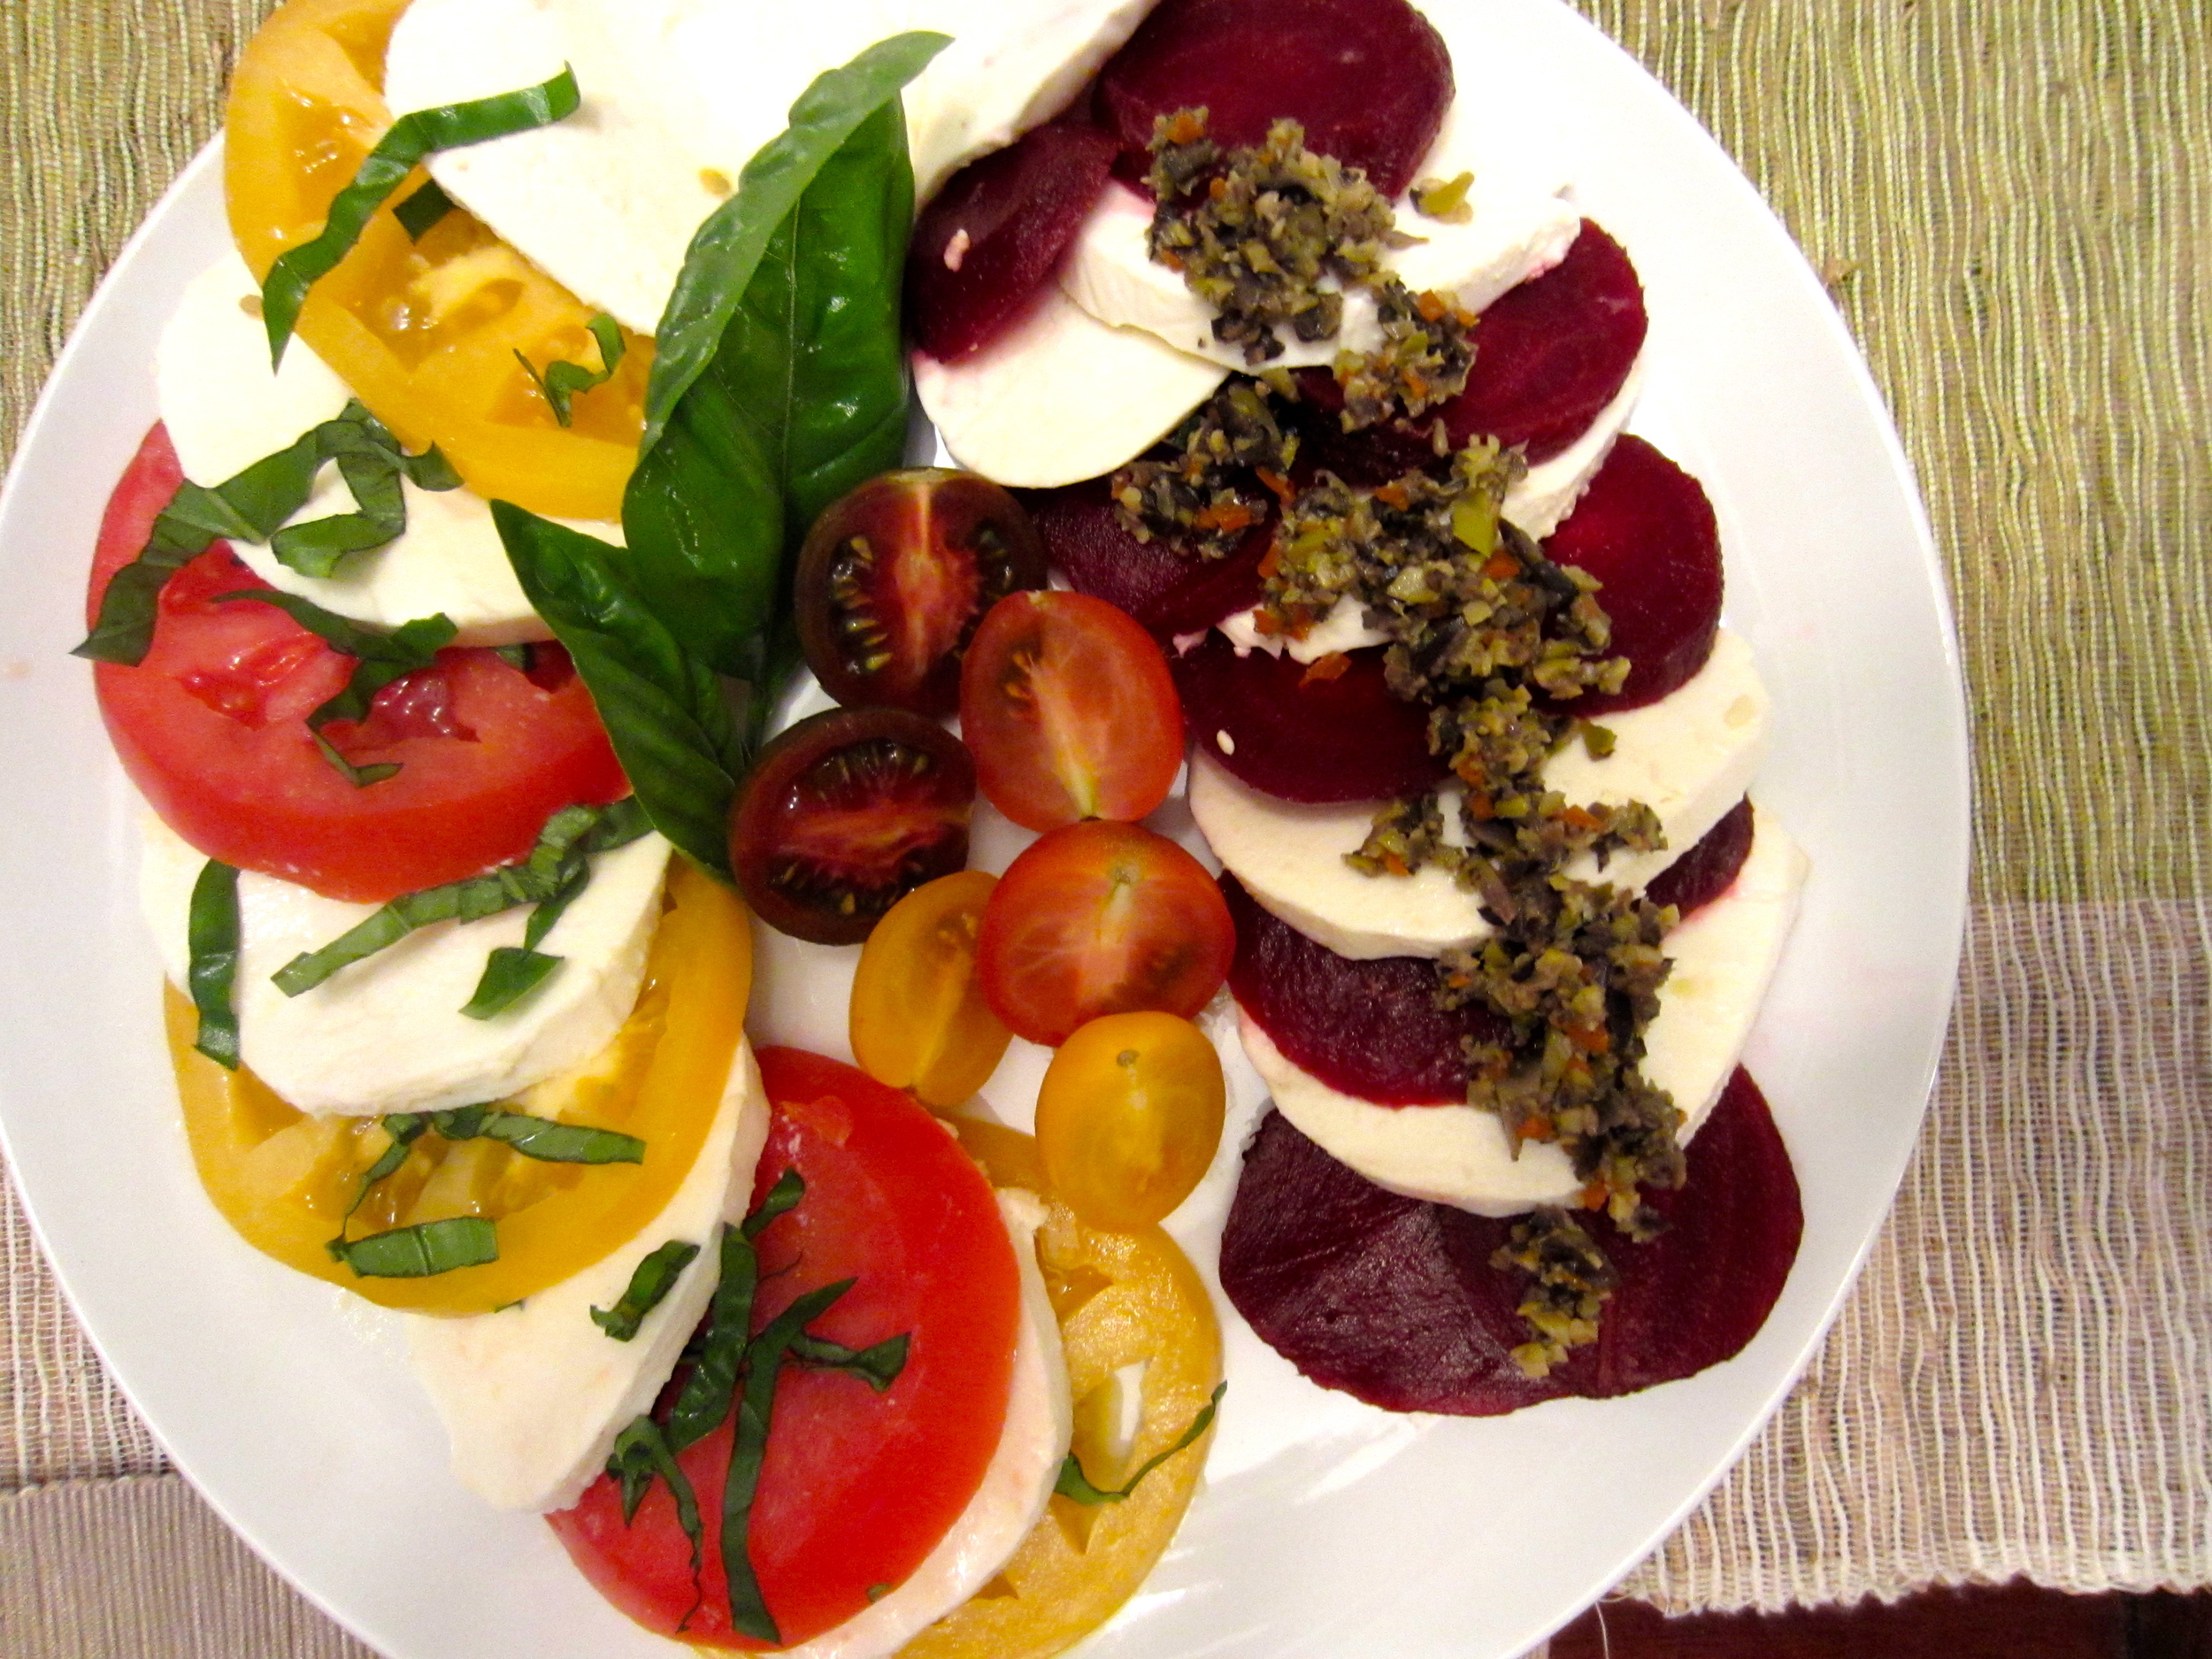 Caprese Salad with tomatoes, topped with Olive Tapenda